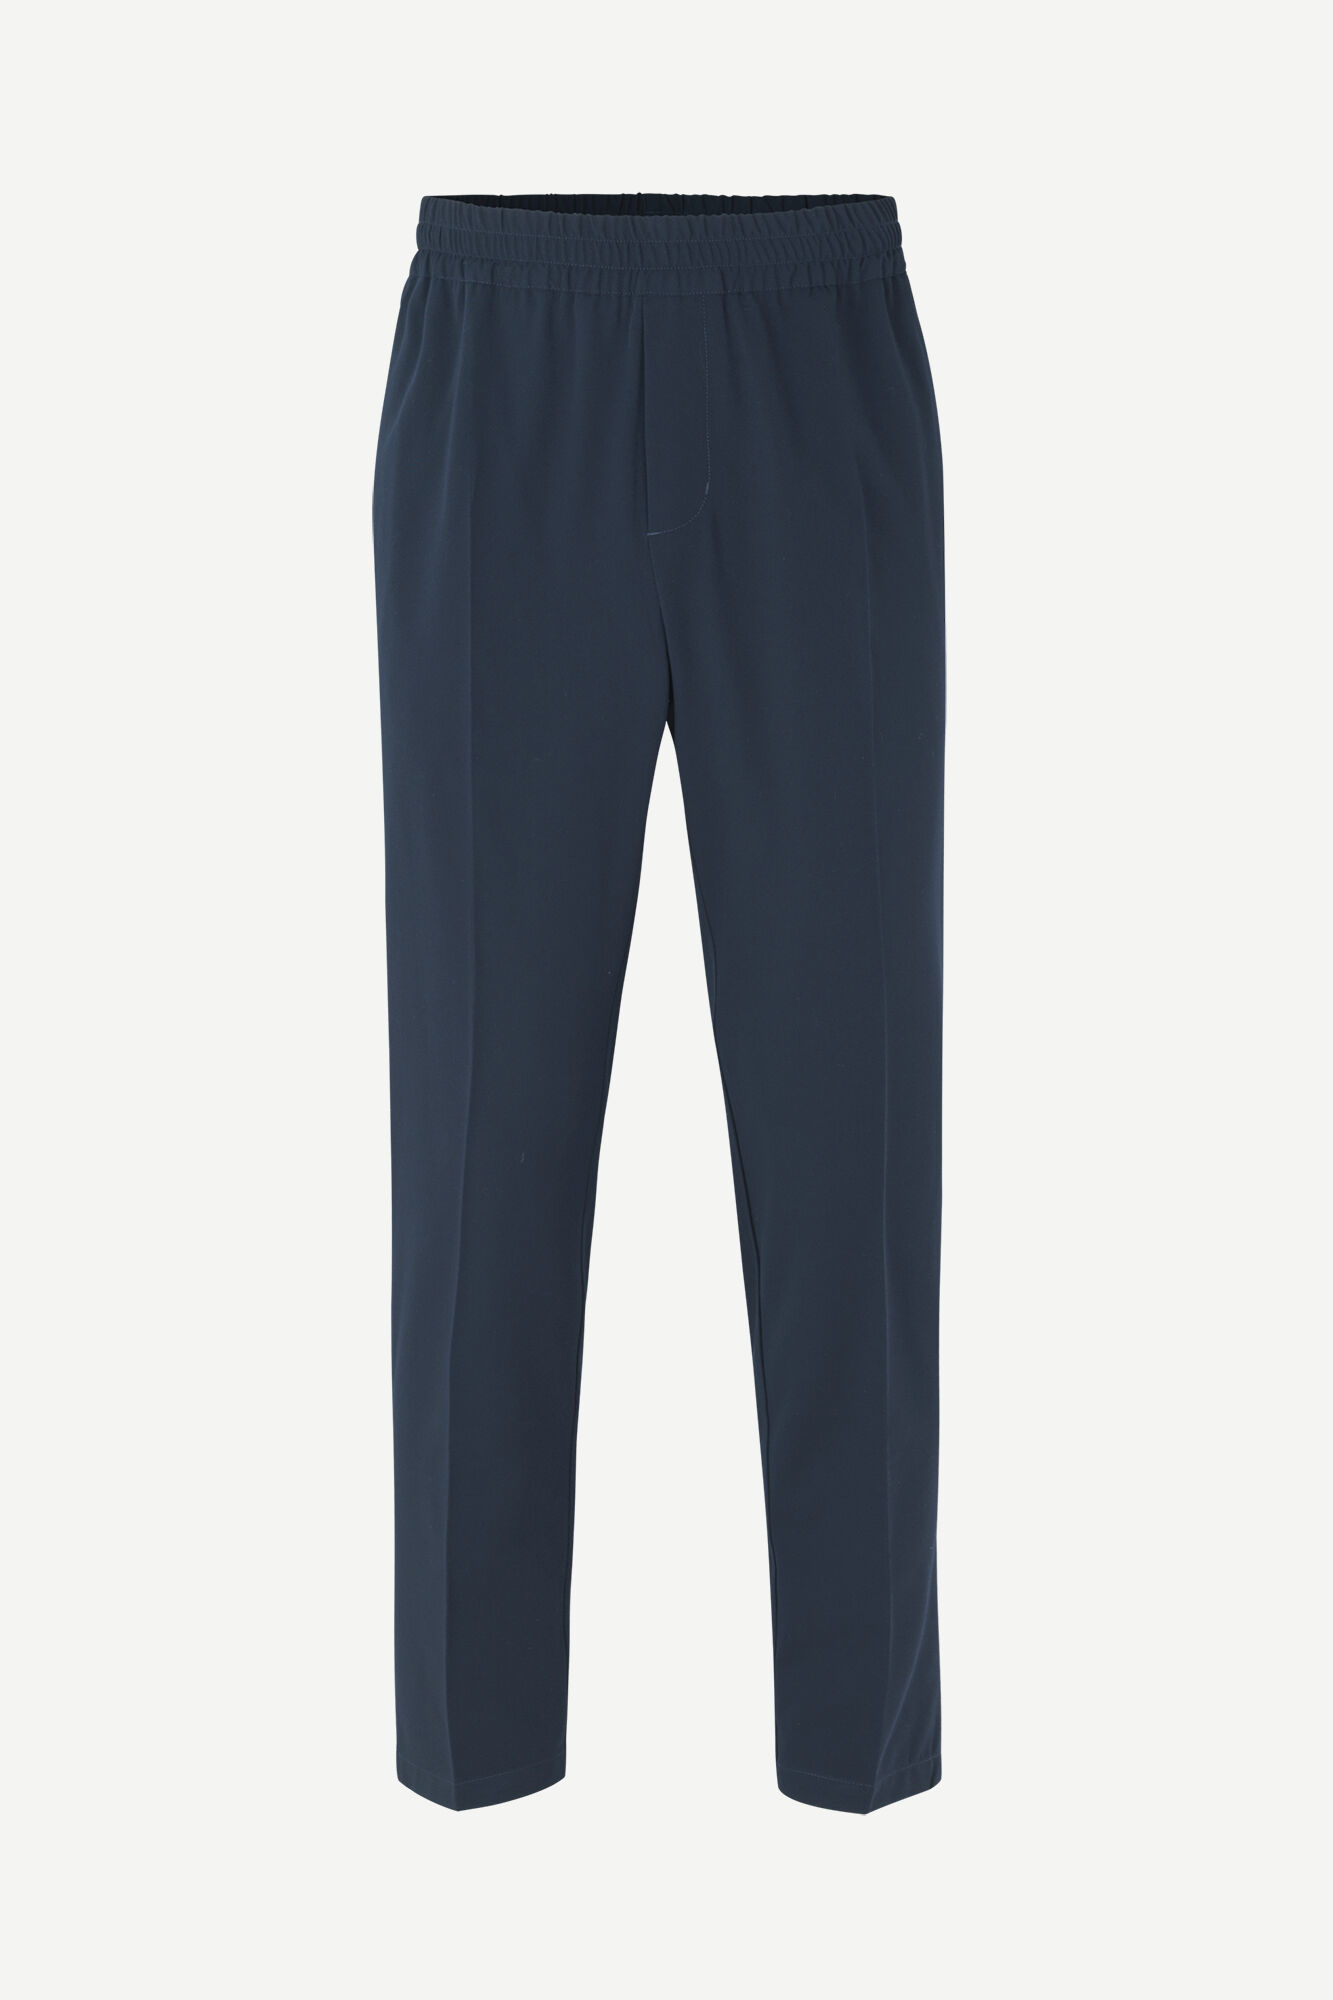 Smithy Relaxed Fit Trouser Night Sky Blue-1